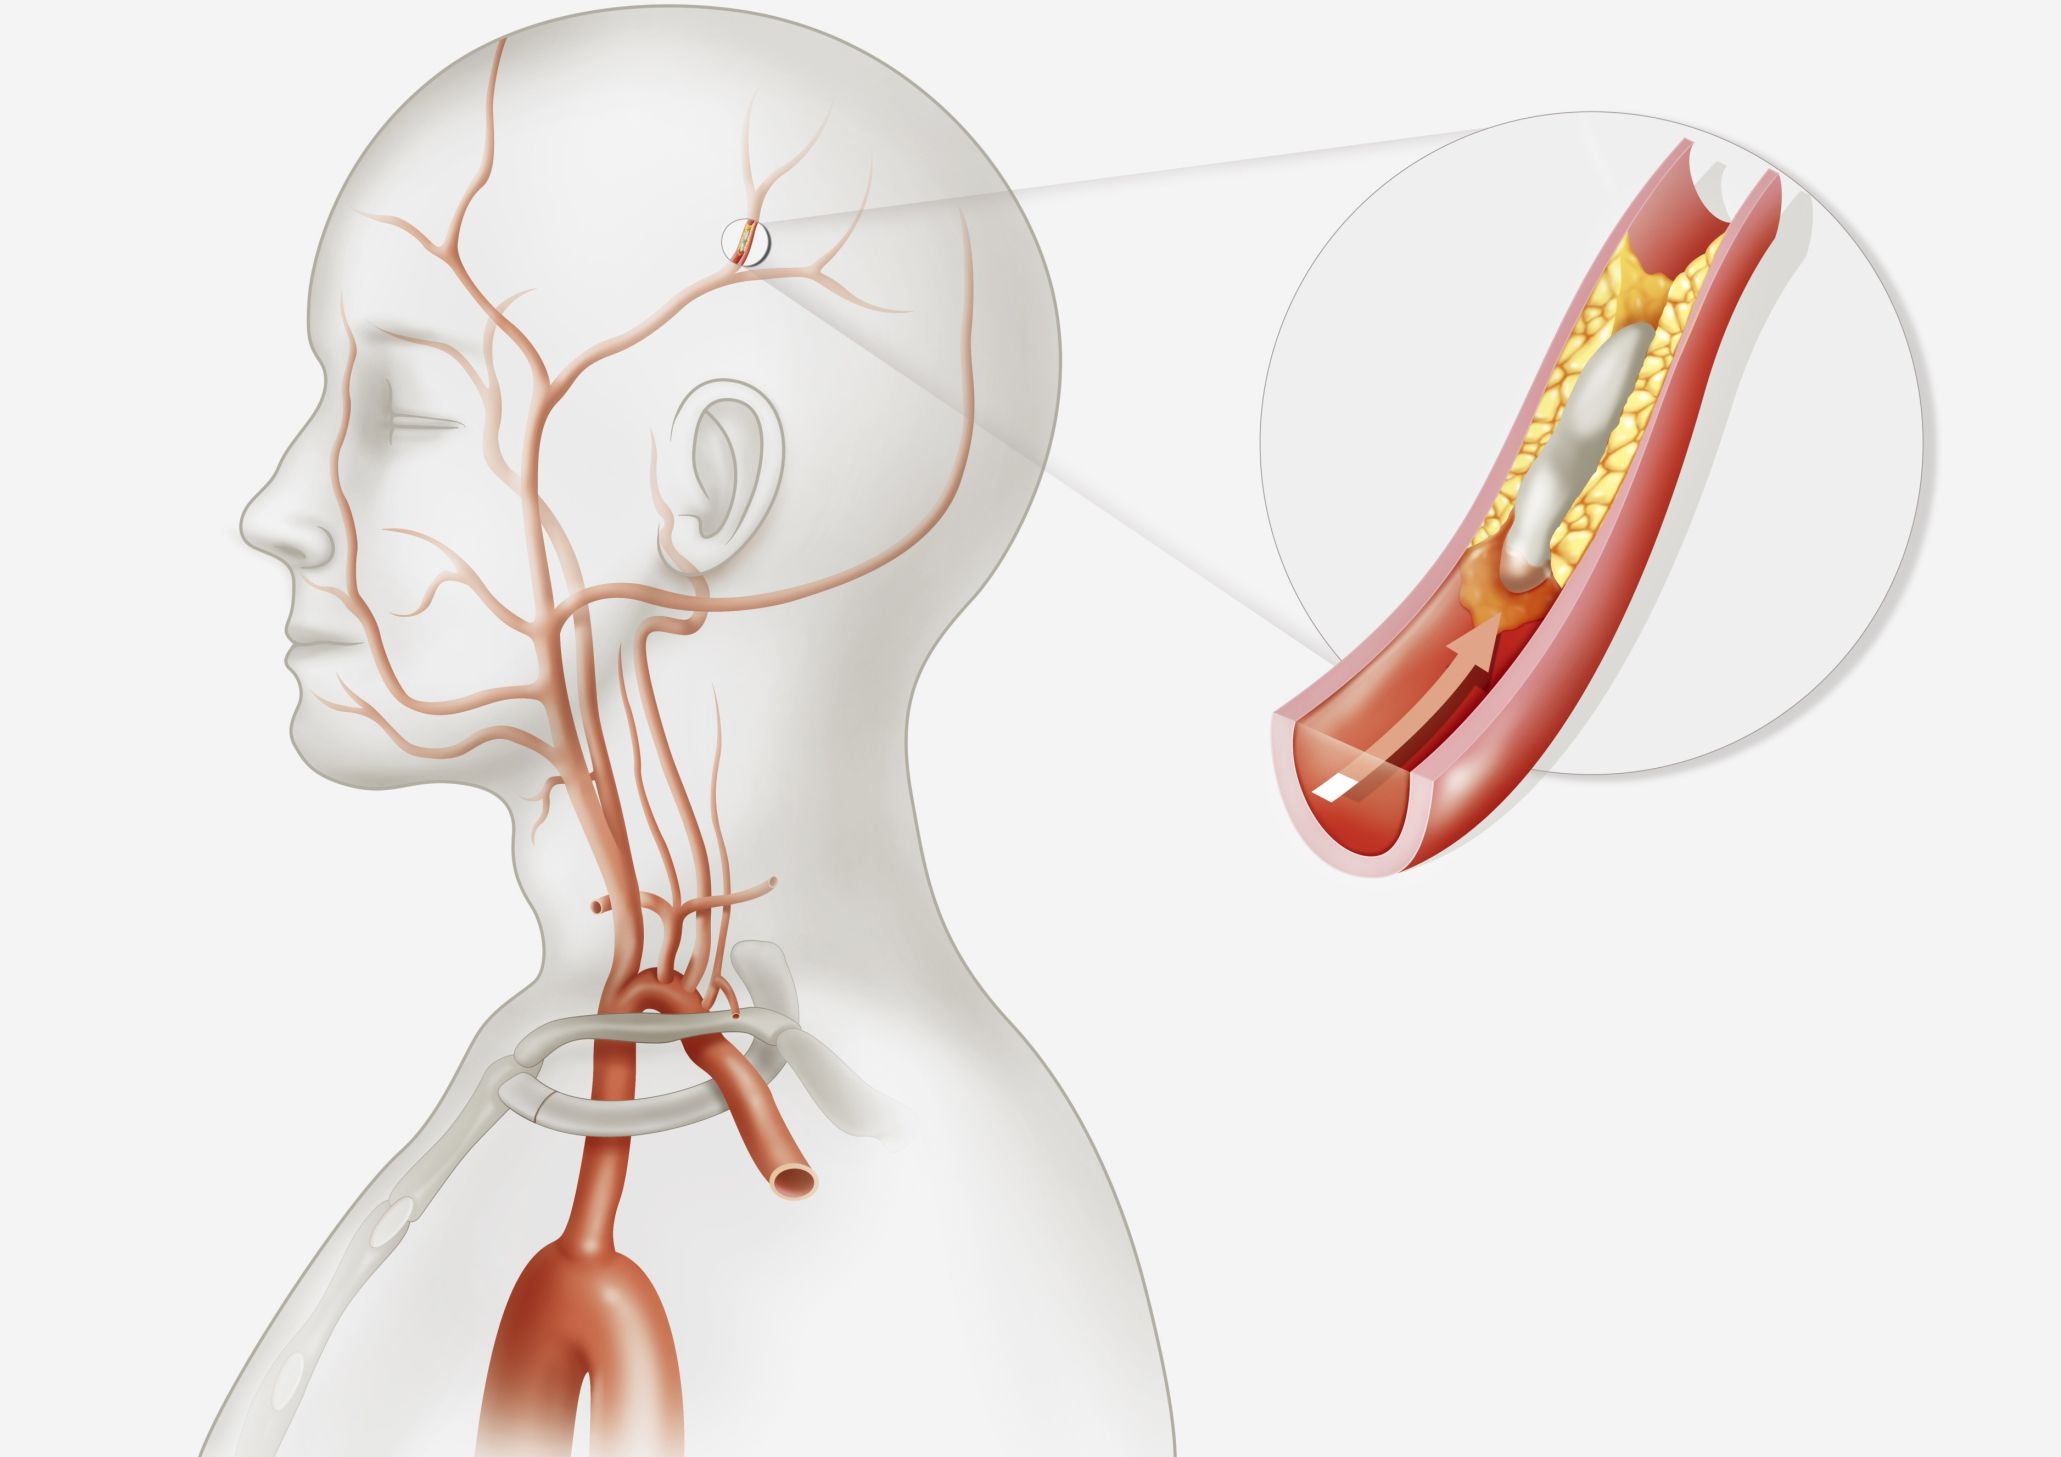 Illustration of the cause of a transient ischemic attack